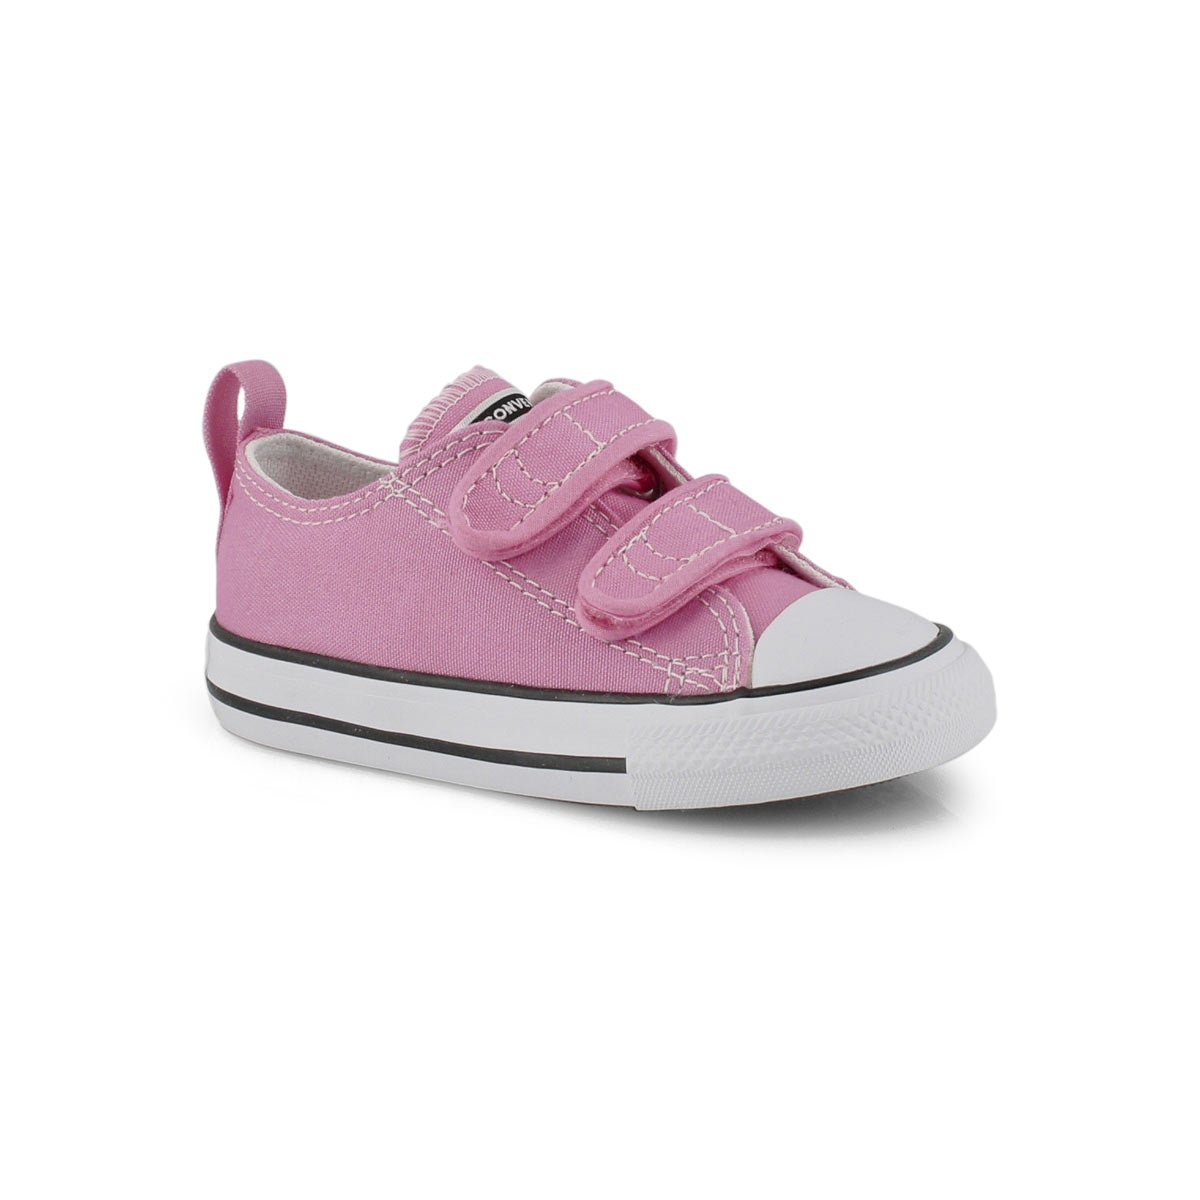 Infants' CORE V2 OX  pink canvas sneakers